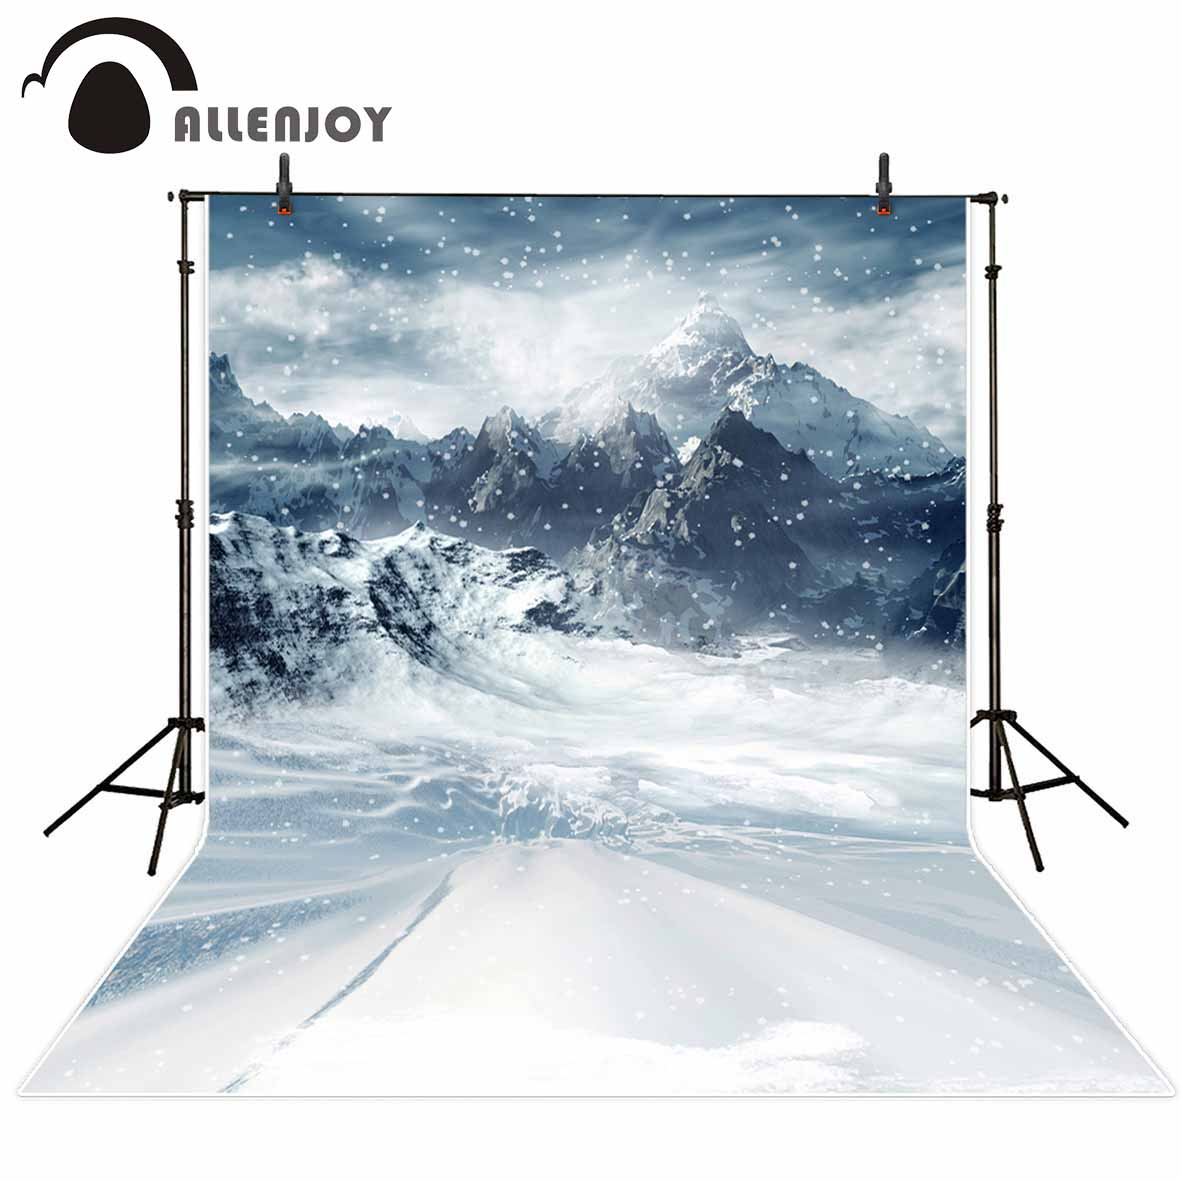 Allenjoy photography backdrops Winter background snowy mountains vinyl backdrops for photography kids photography background дон jsd 20 egft winter mountains